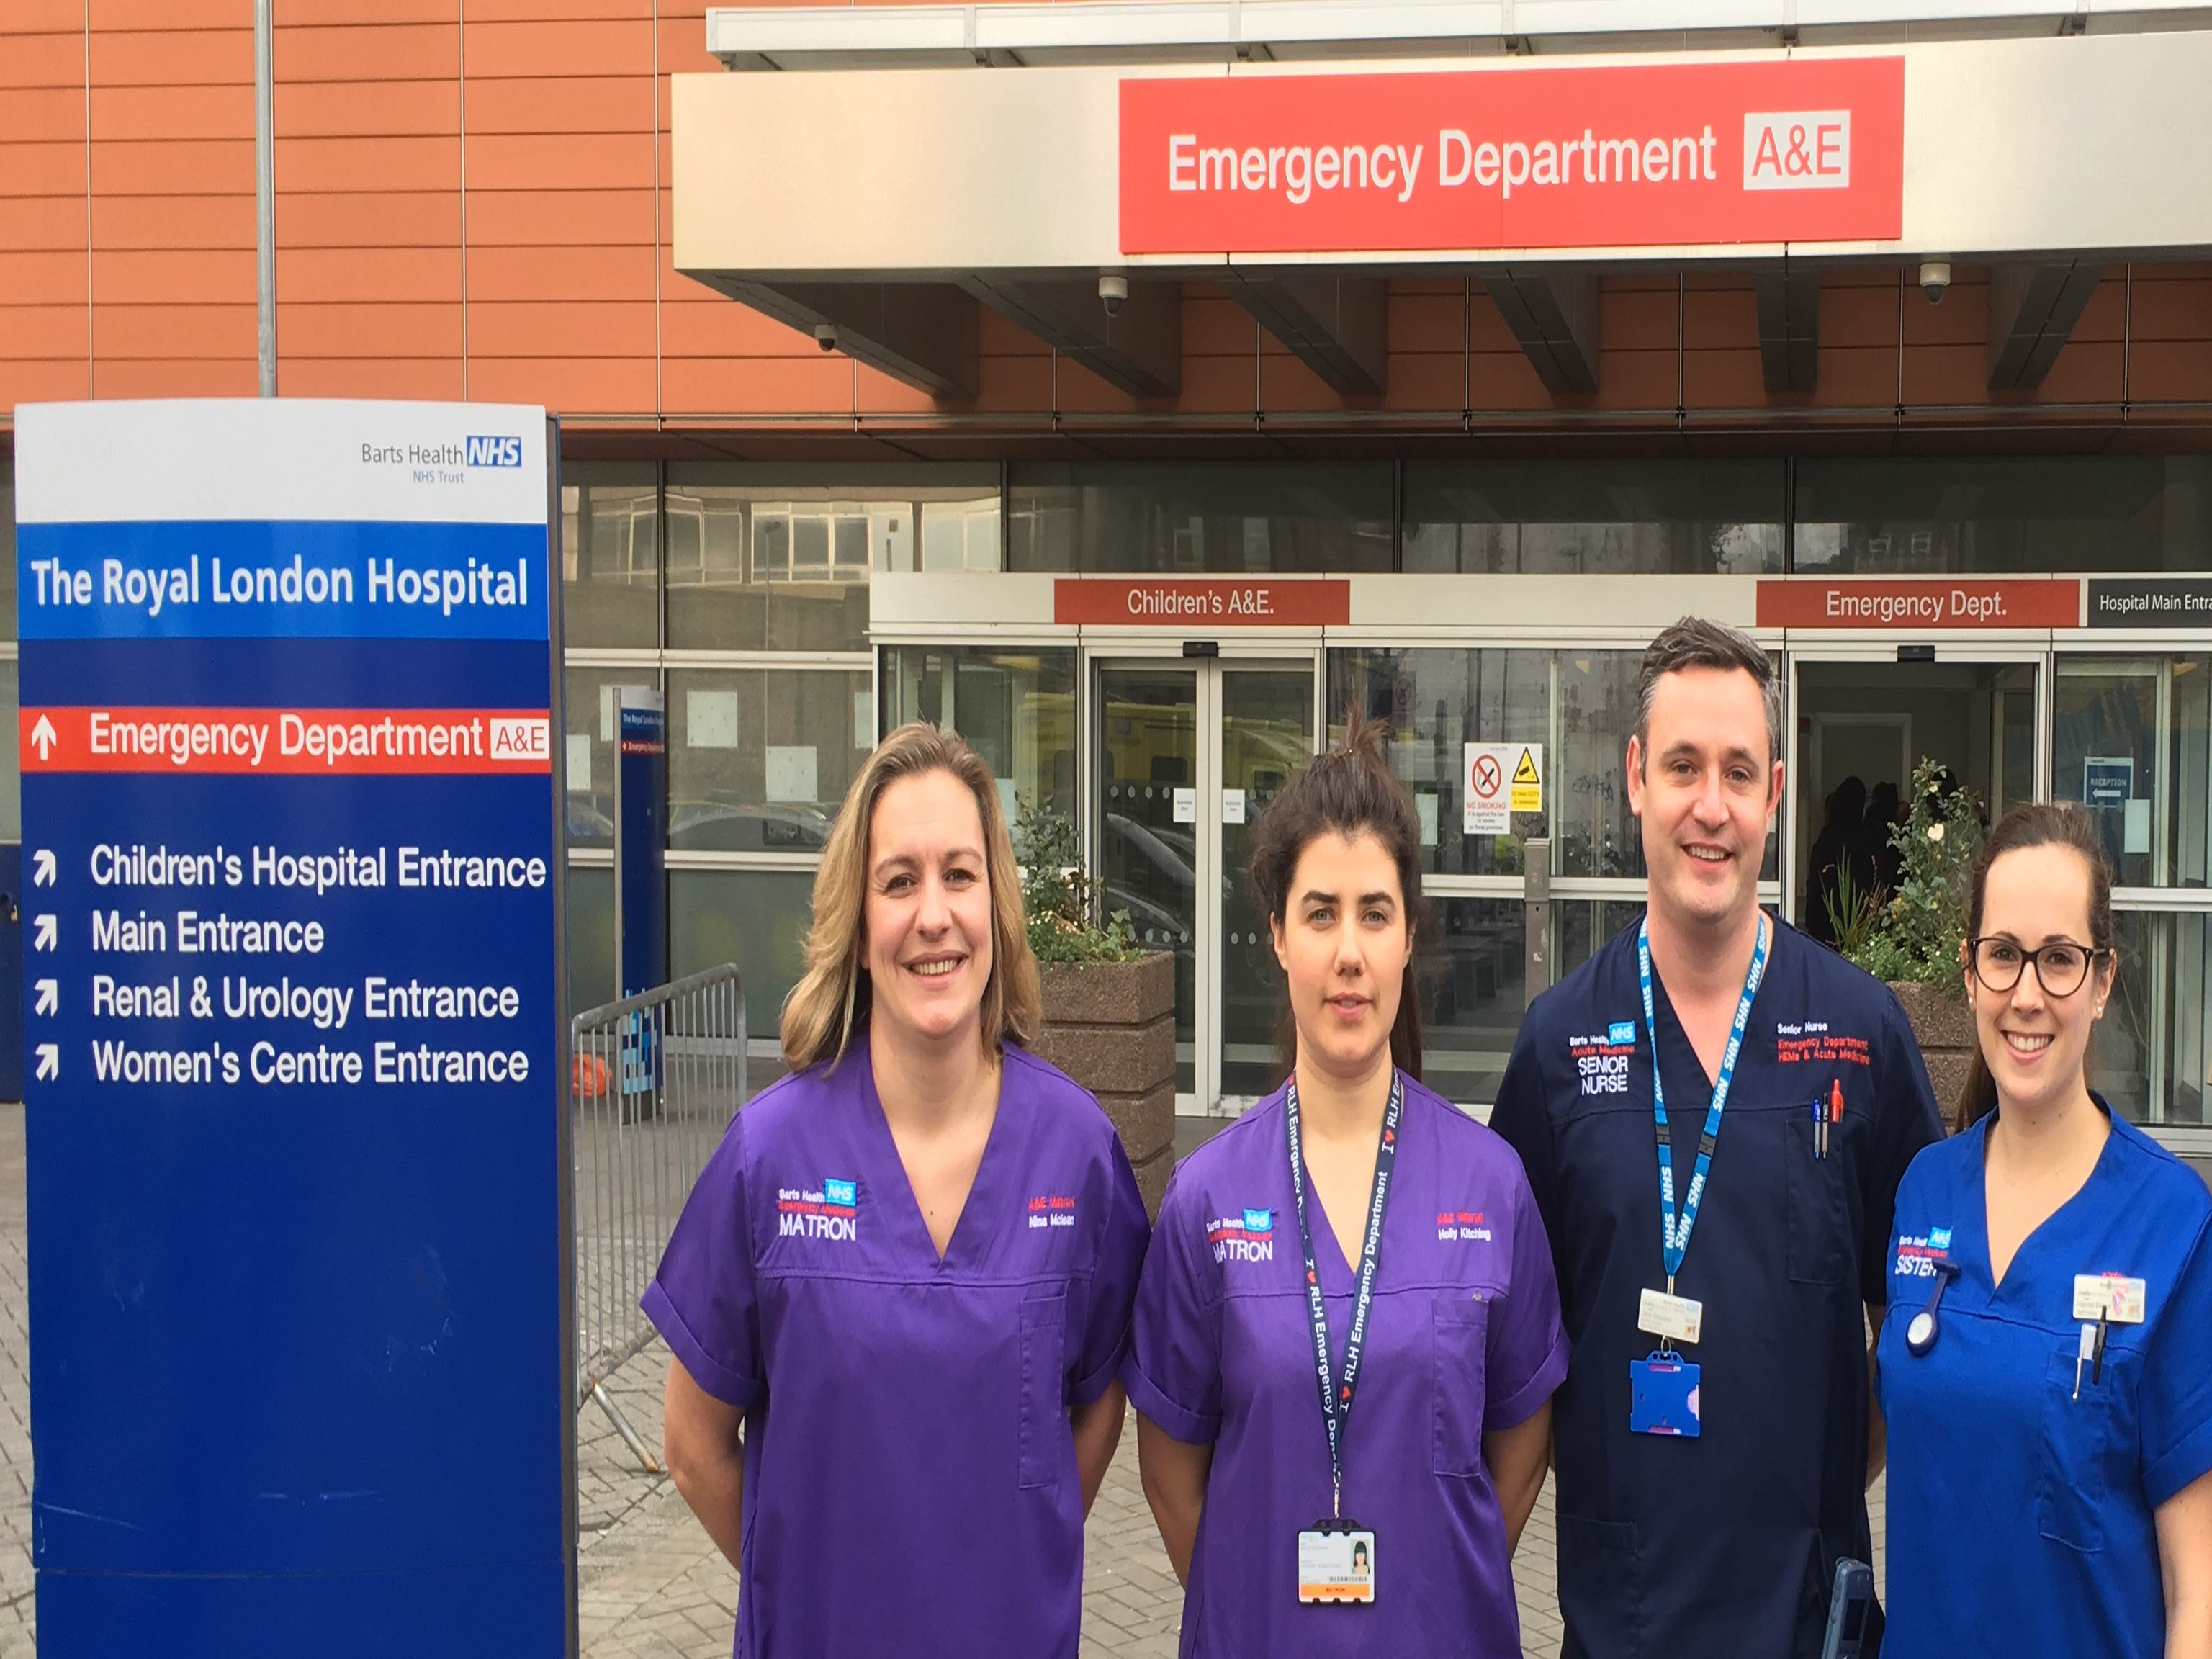 Emergency Department Team photo